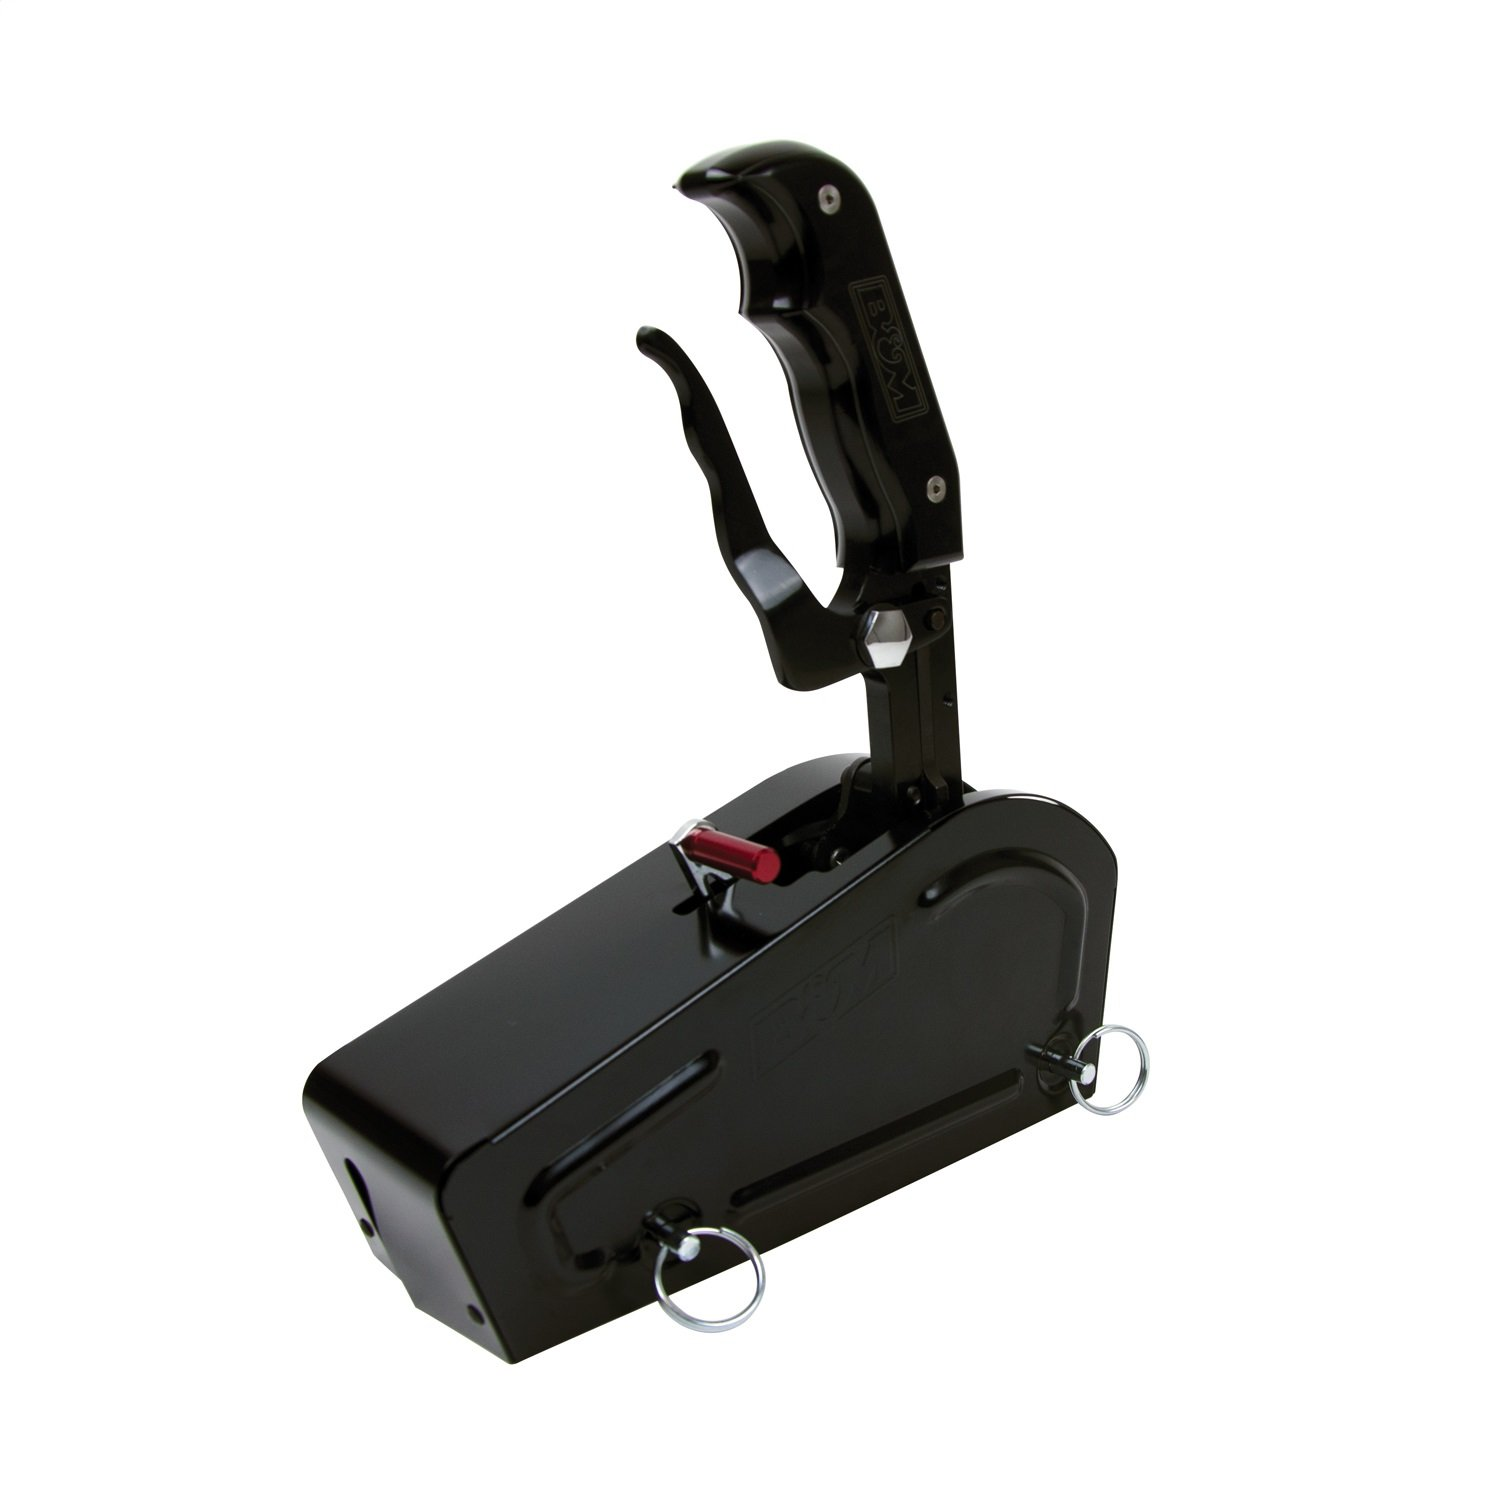 B/&M 81052 Pro Stick Black Automatic Shifter with Stealth Magnum Grip